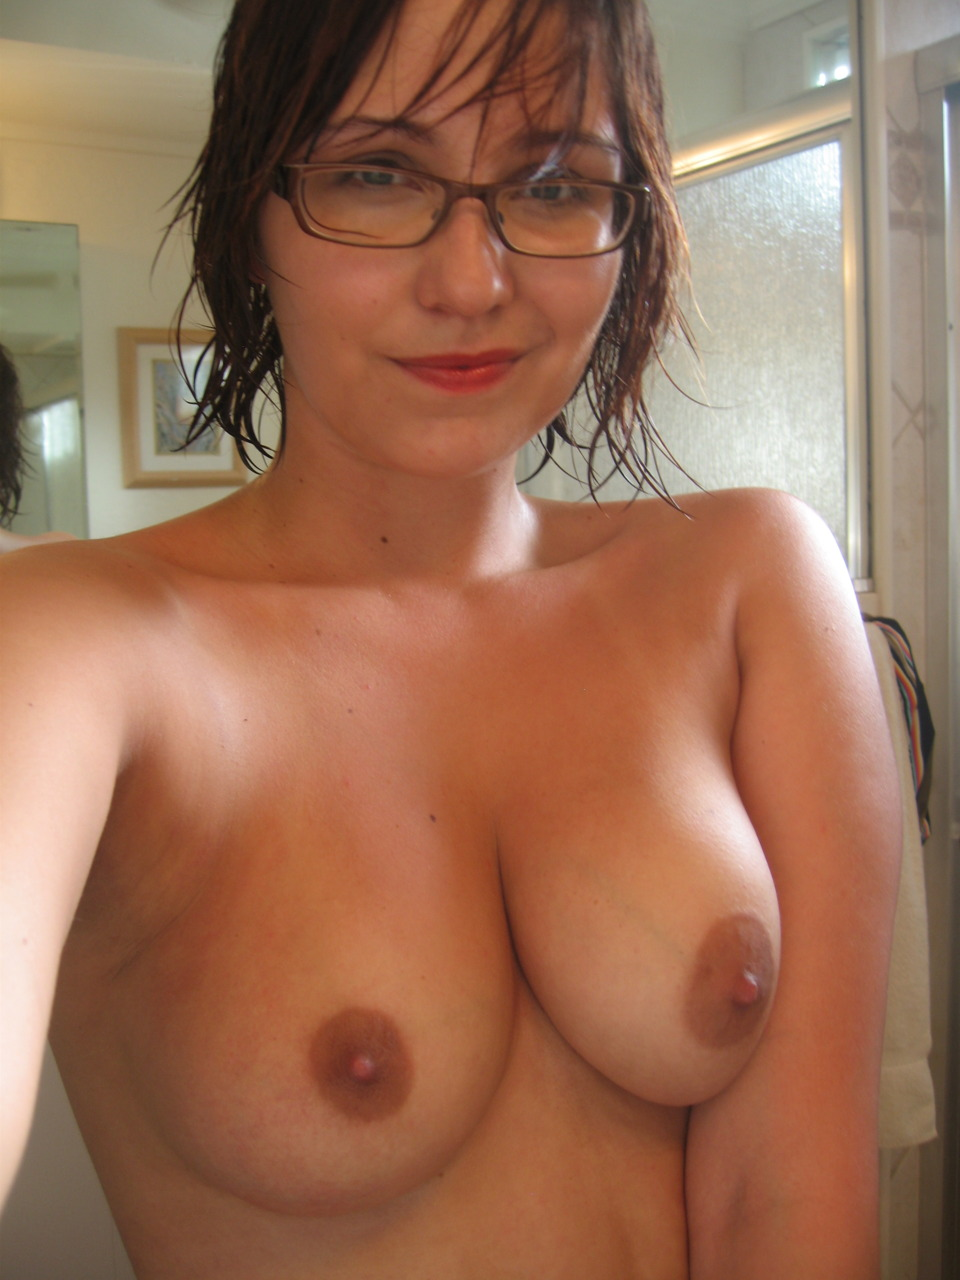 Wifes from new hampshire amateur nude pics